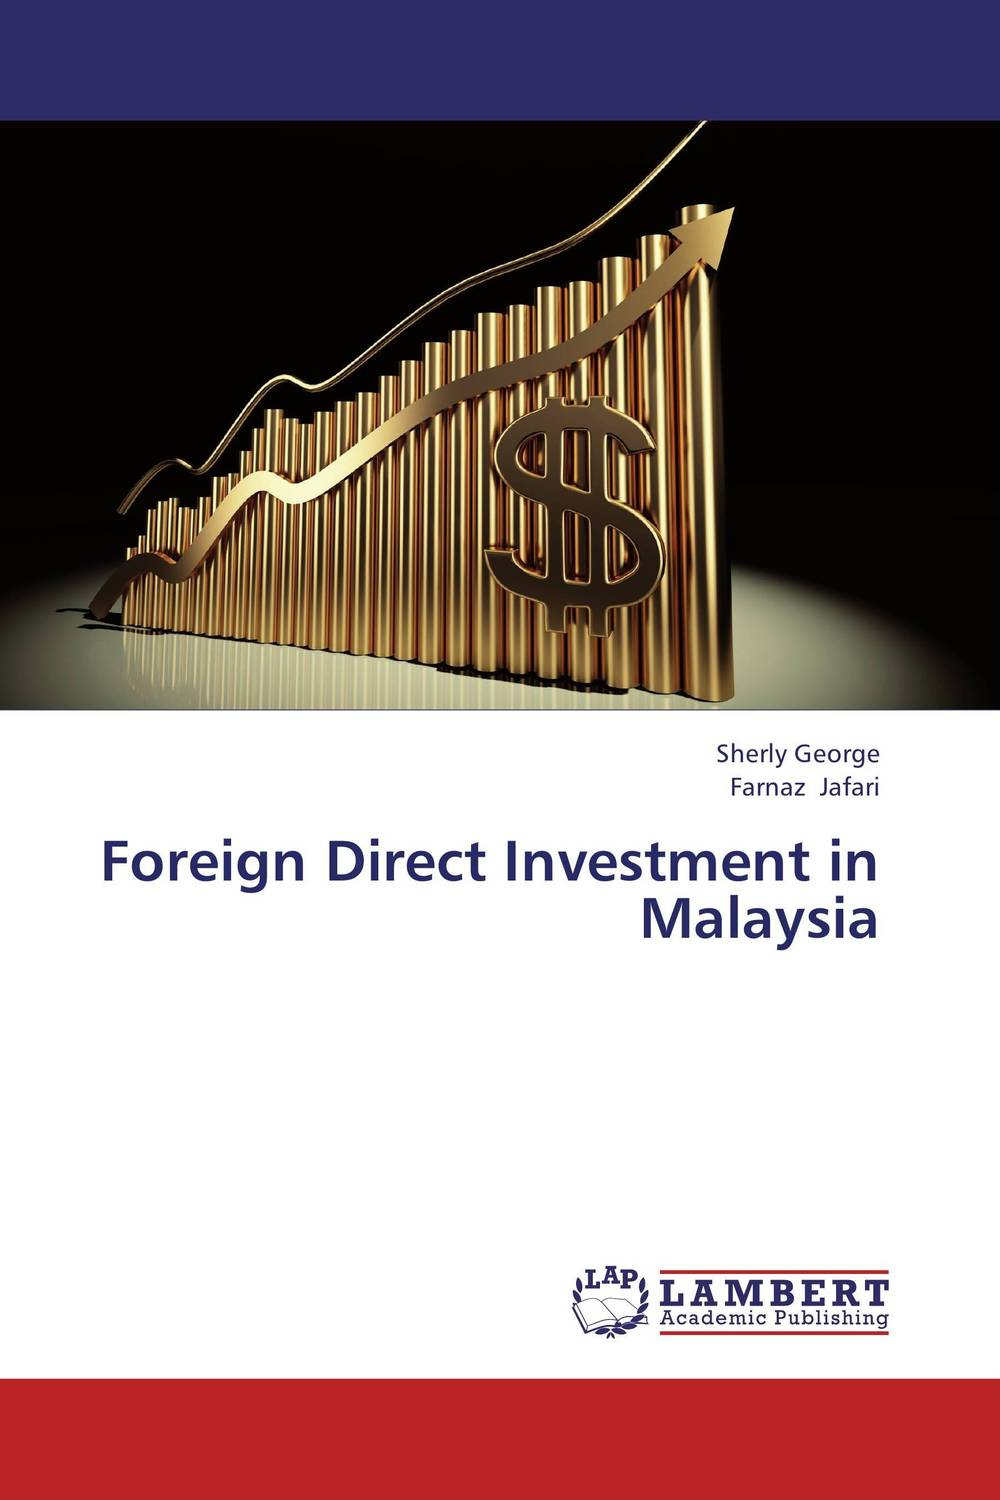 an analysis of the topic of the inflow of funds through foreign direct invel Trends in global and regional foreign direct investment flows on the other hand, cover the borrowing and lending of funds between direct investors and direct.